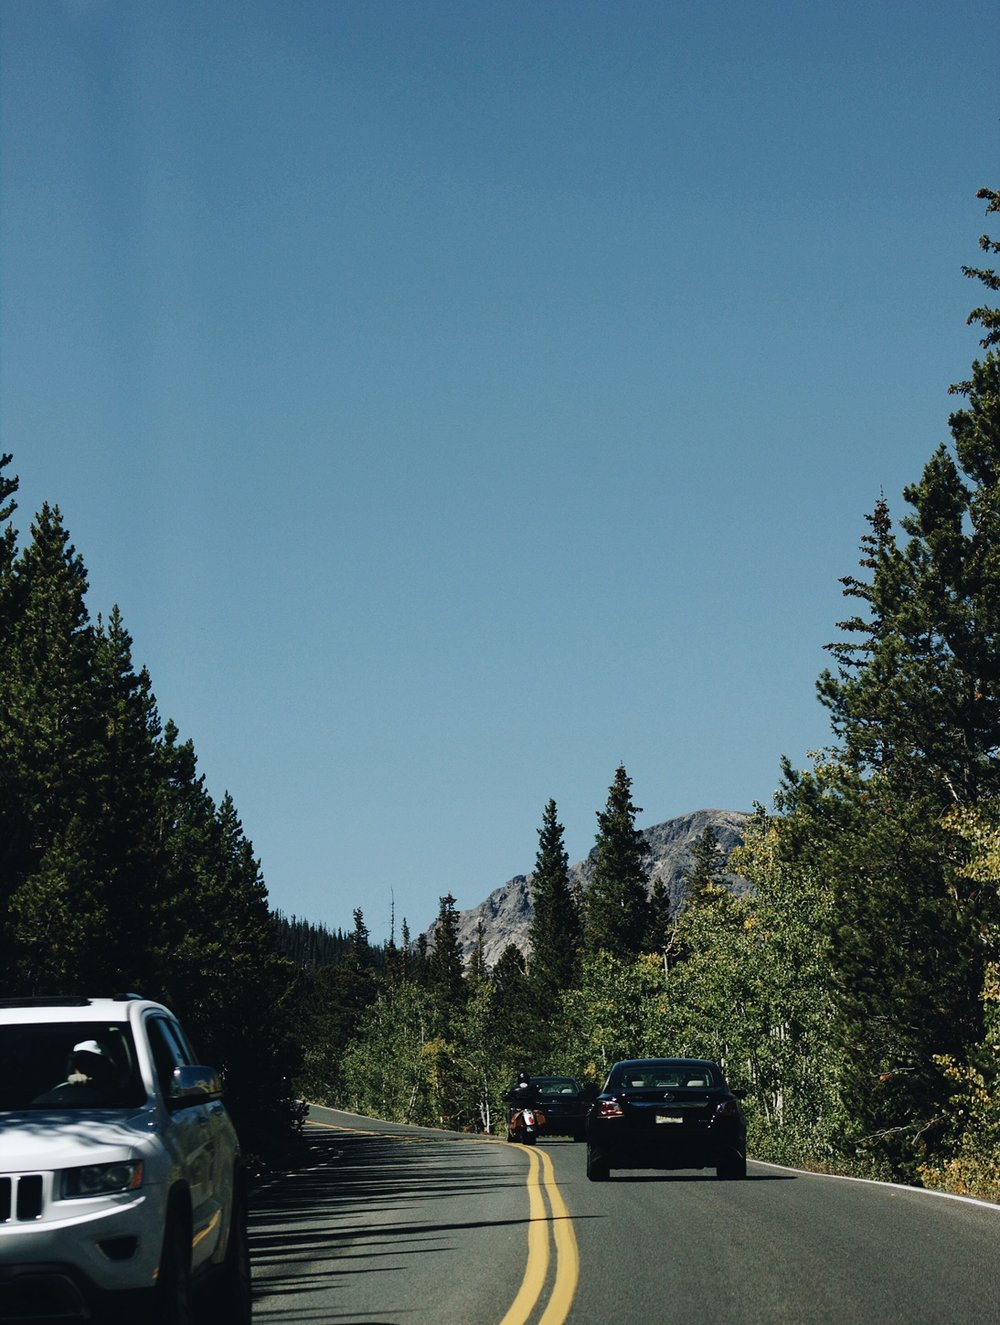 The beginning of our drive up the mountain!